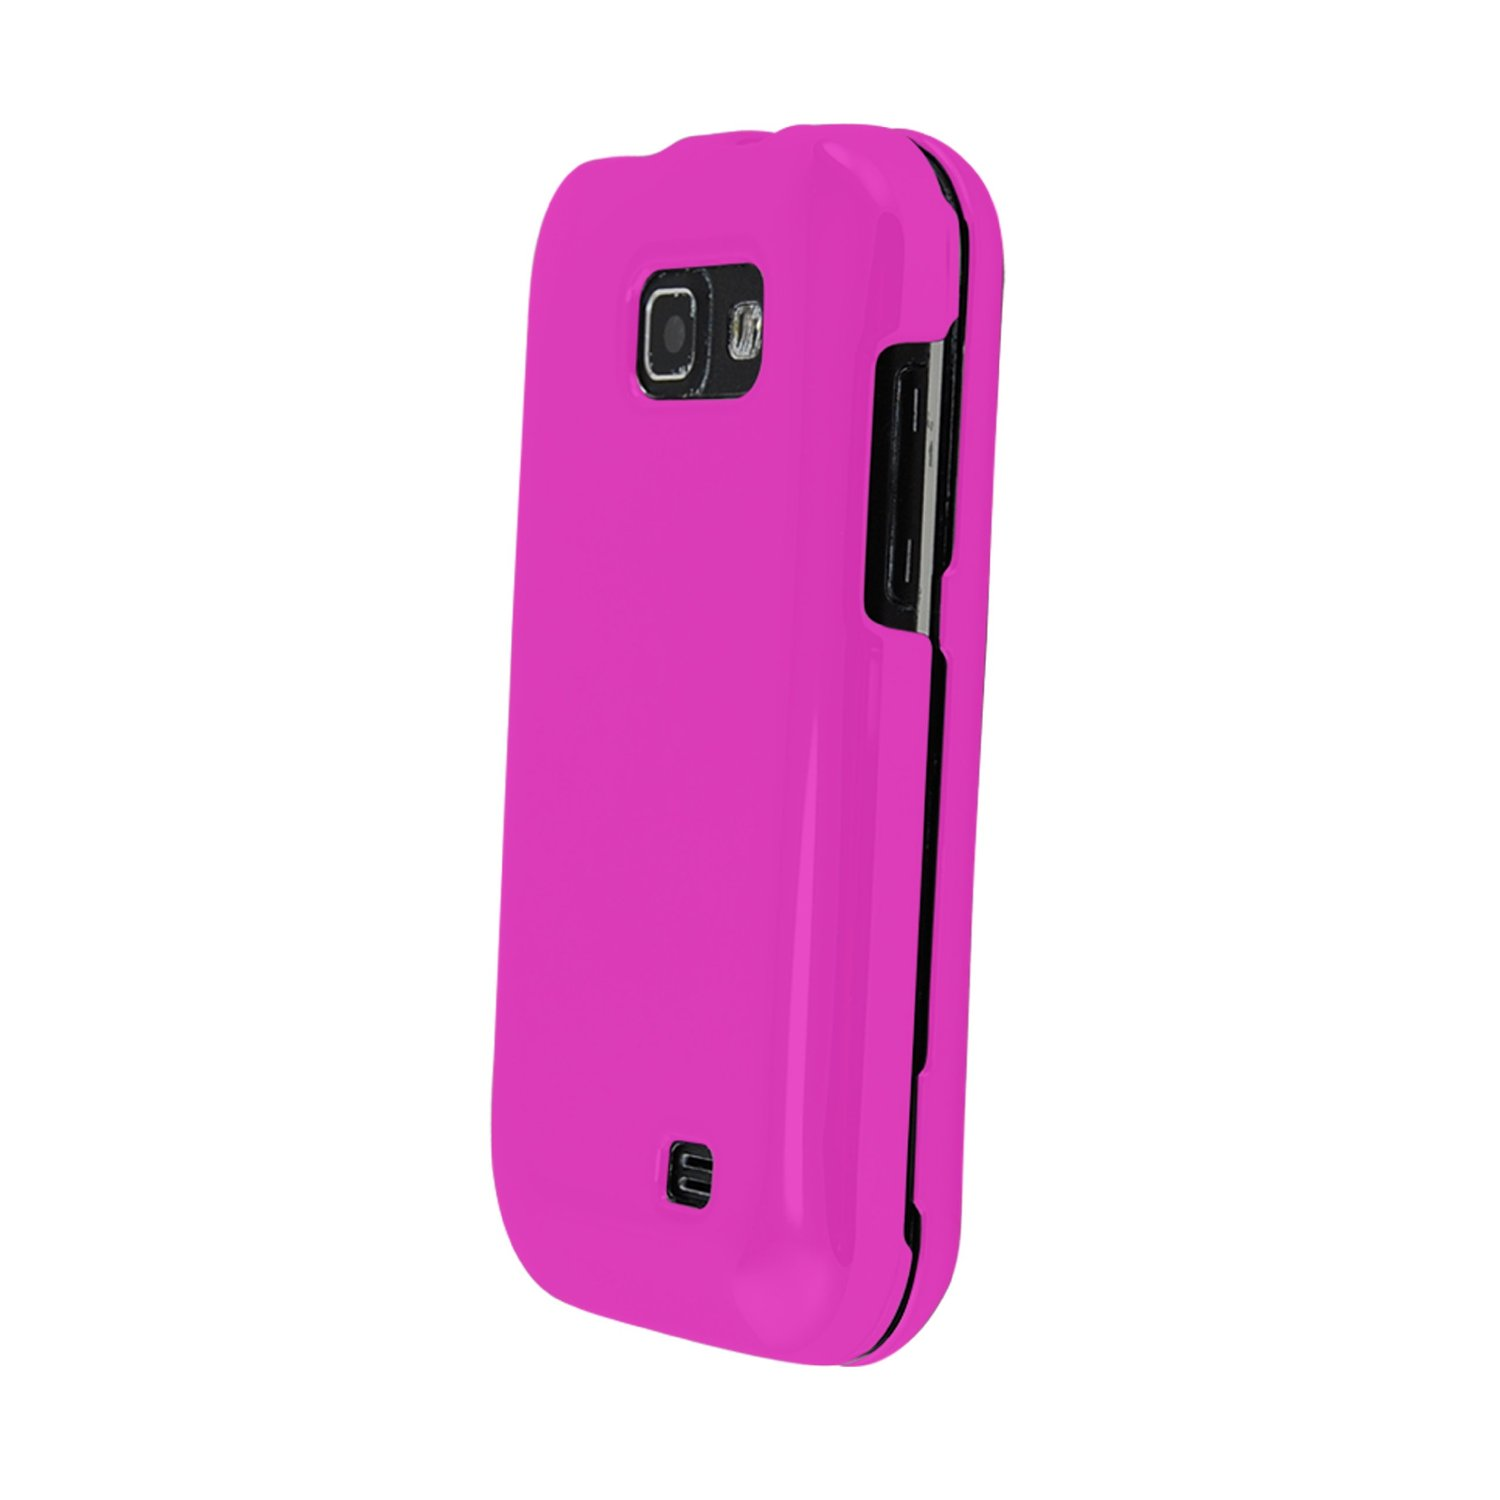 Technocel Soft Touch Shield Case Cover for Samsung M920 Transform (Pink) - SAM920SPK-Z